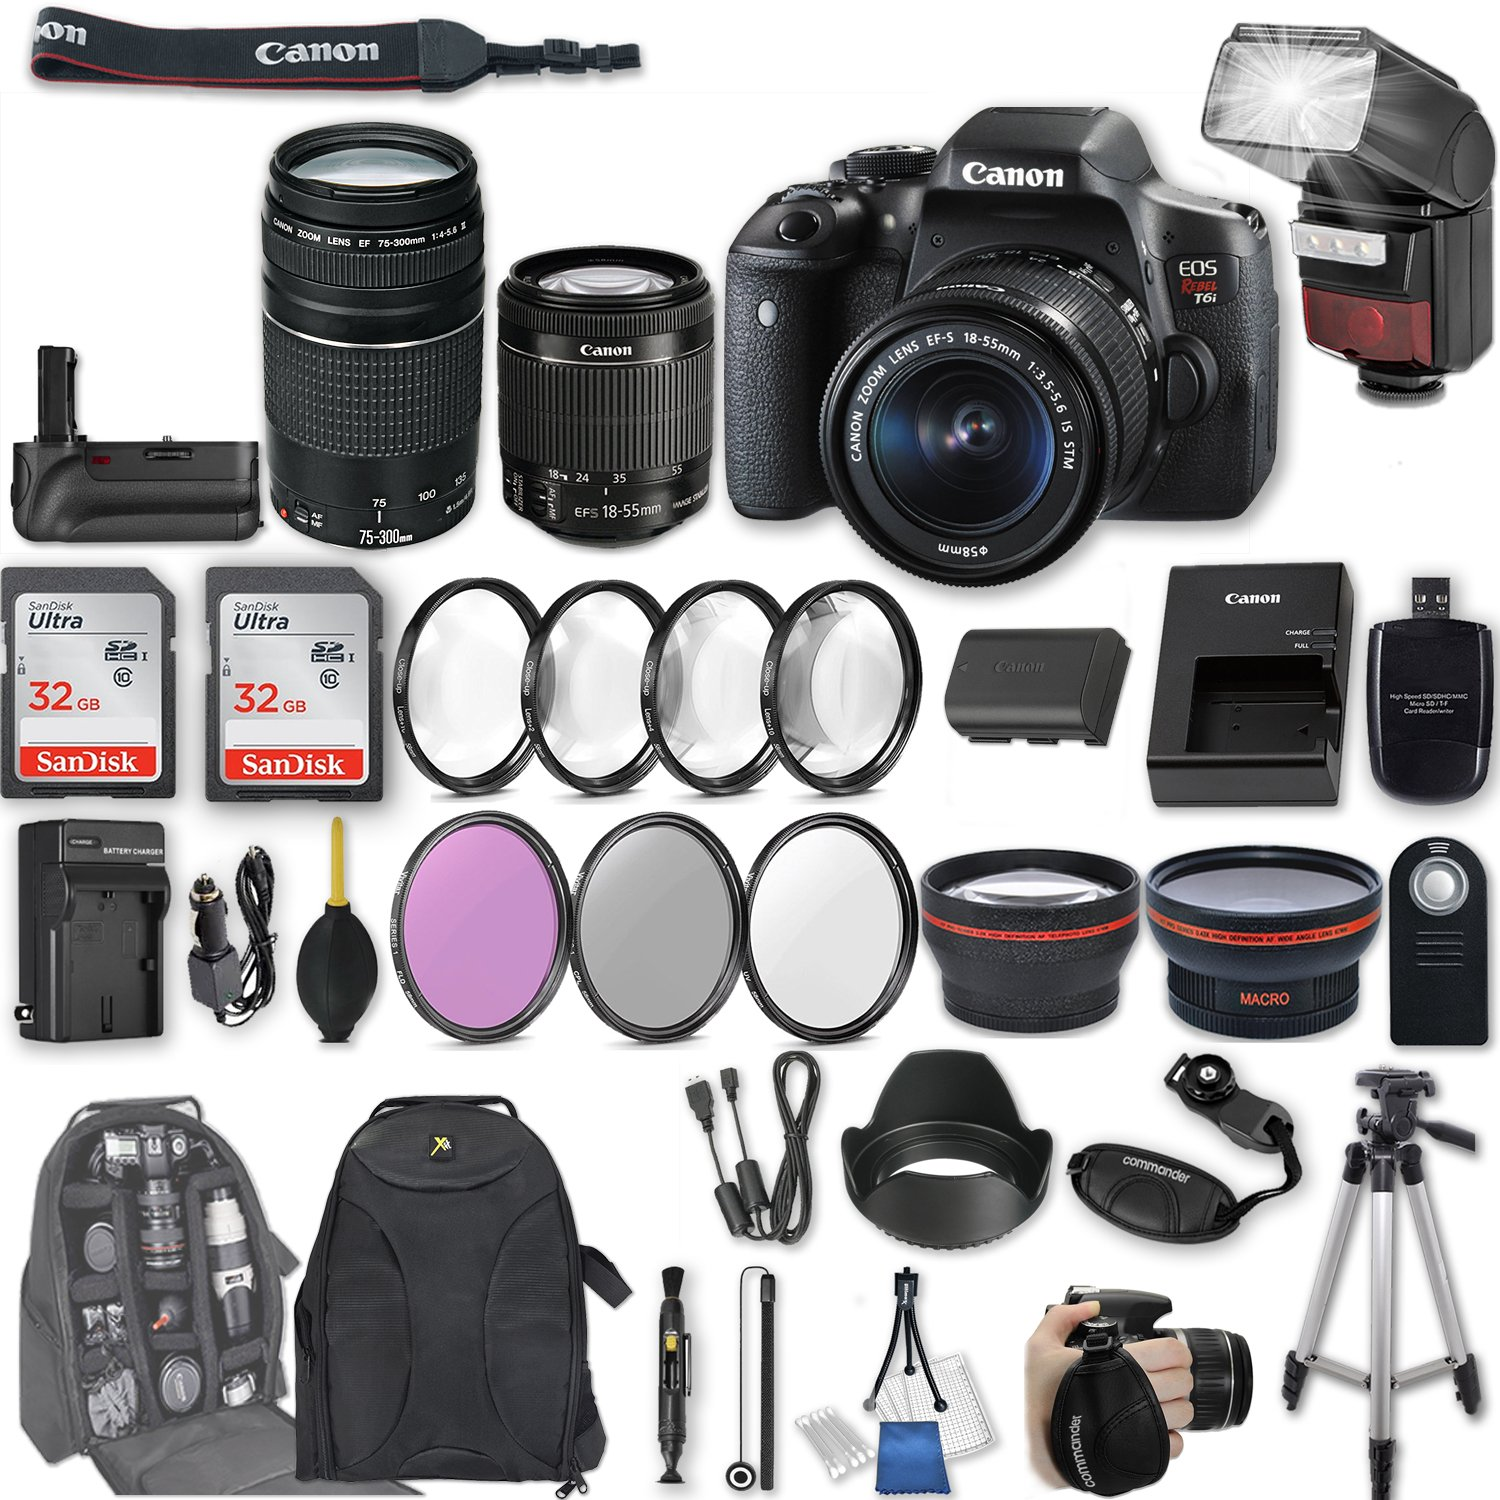 Canon EOS Rebel T6i DSLR Camera with EF-S 18-55mm f/3.5-5.6 IS STM Lens + EF 75-300mm f/4-5.6 III + 2Pcs 32GB Sandisk SD Memory + Automatic Flash + Battery Grip + Filter & Macro Kits + Backpack + More by Canon